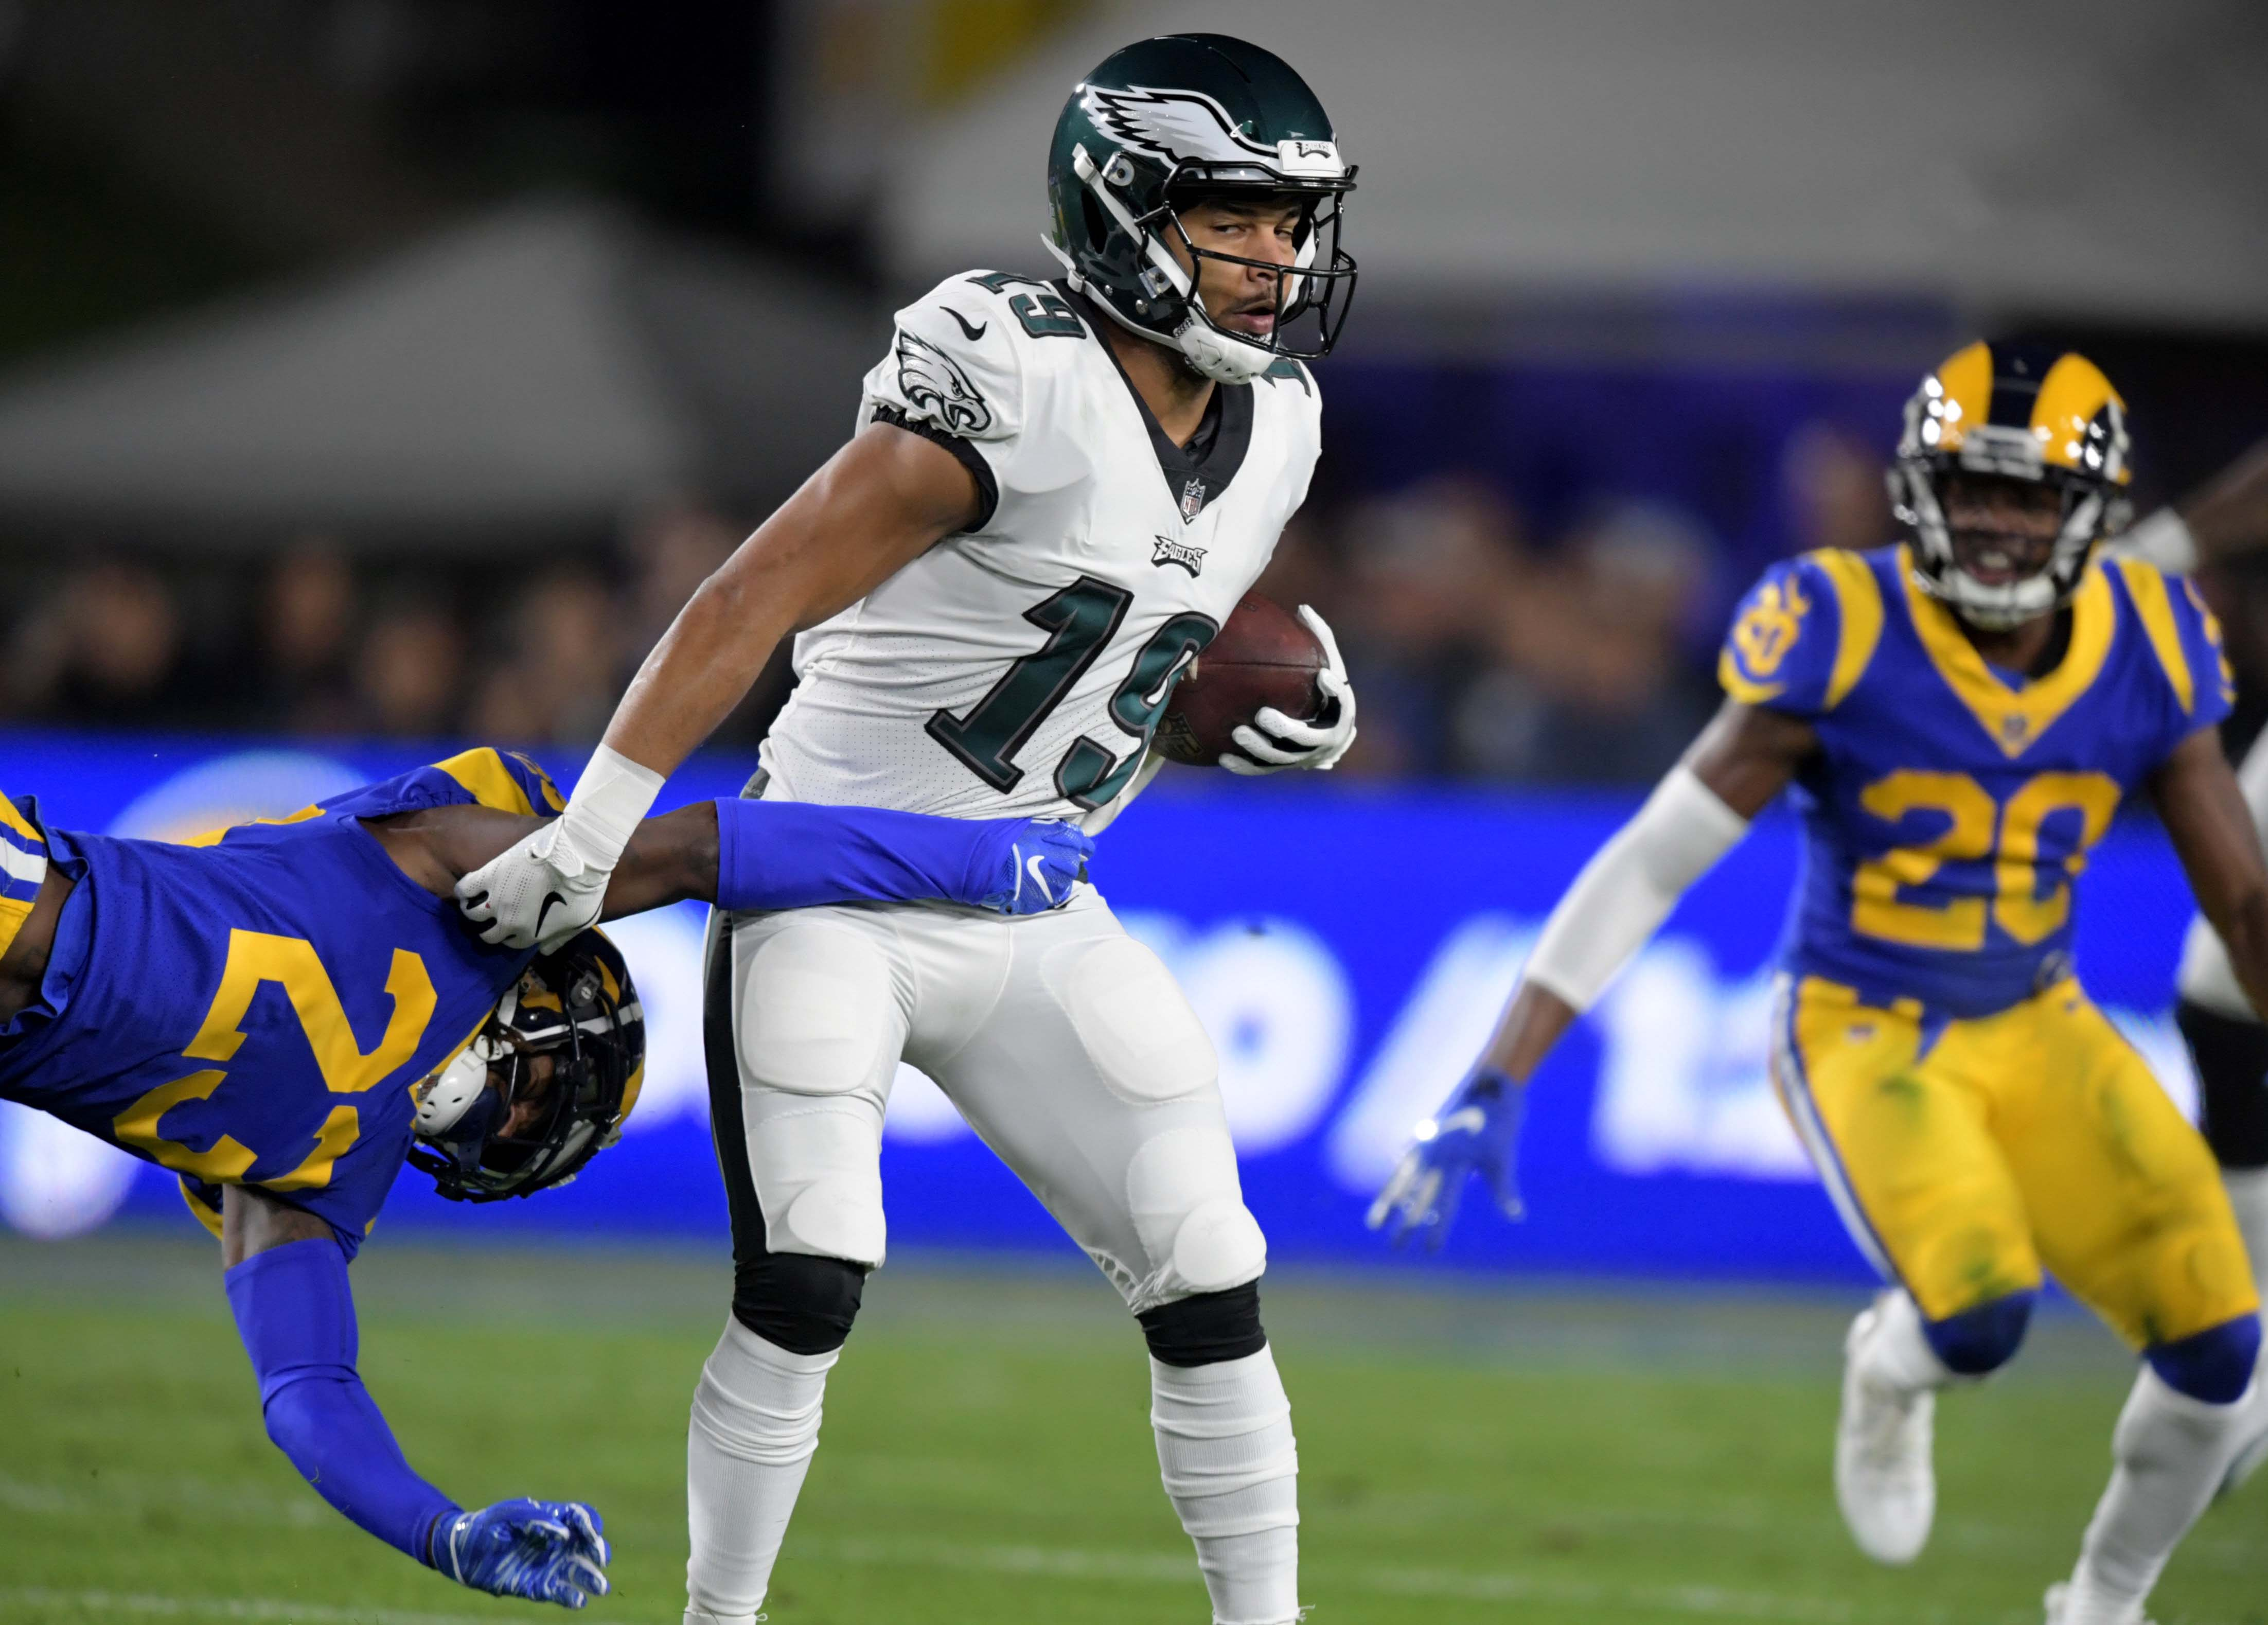 Golden Tate has his eyes set on the New England Patriots